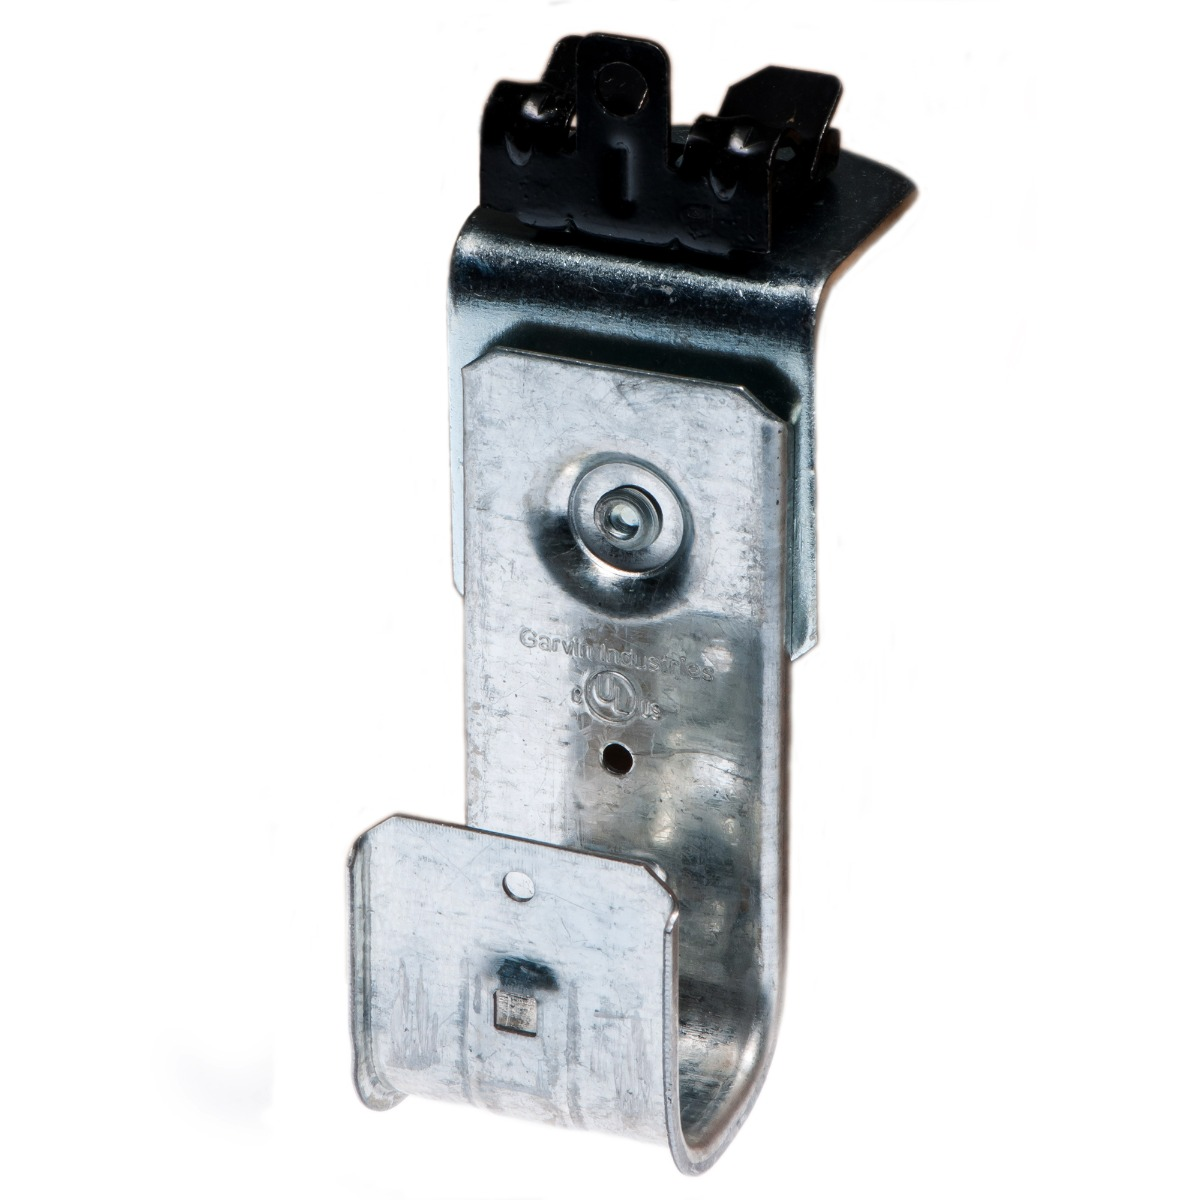 J Hook With Hammer On Beam Clamp Cable Support